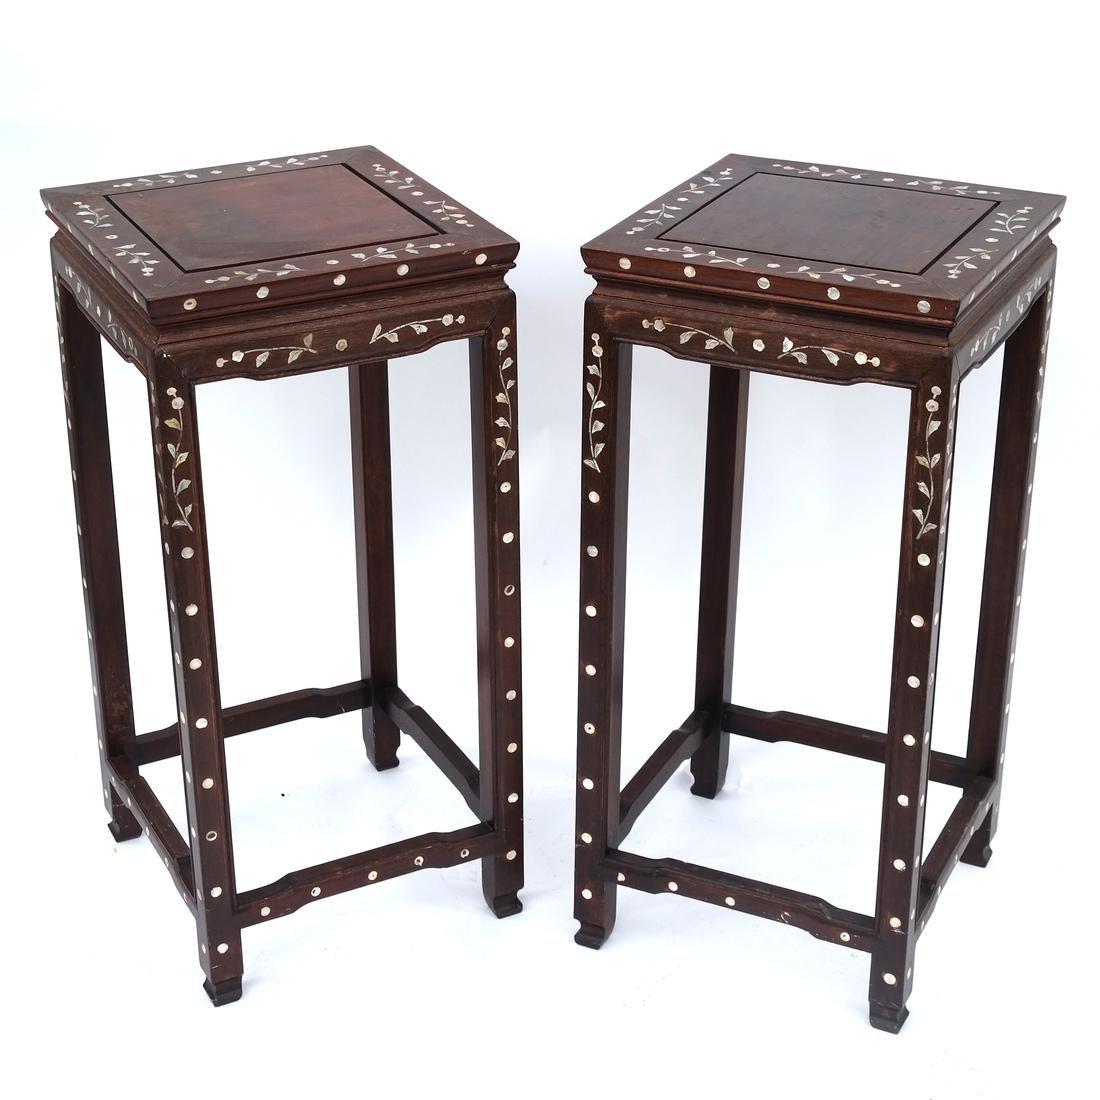 Indo-Chinese Pair of Inlaid Tables